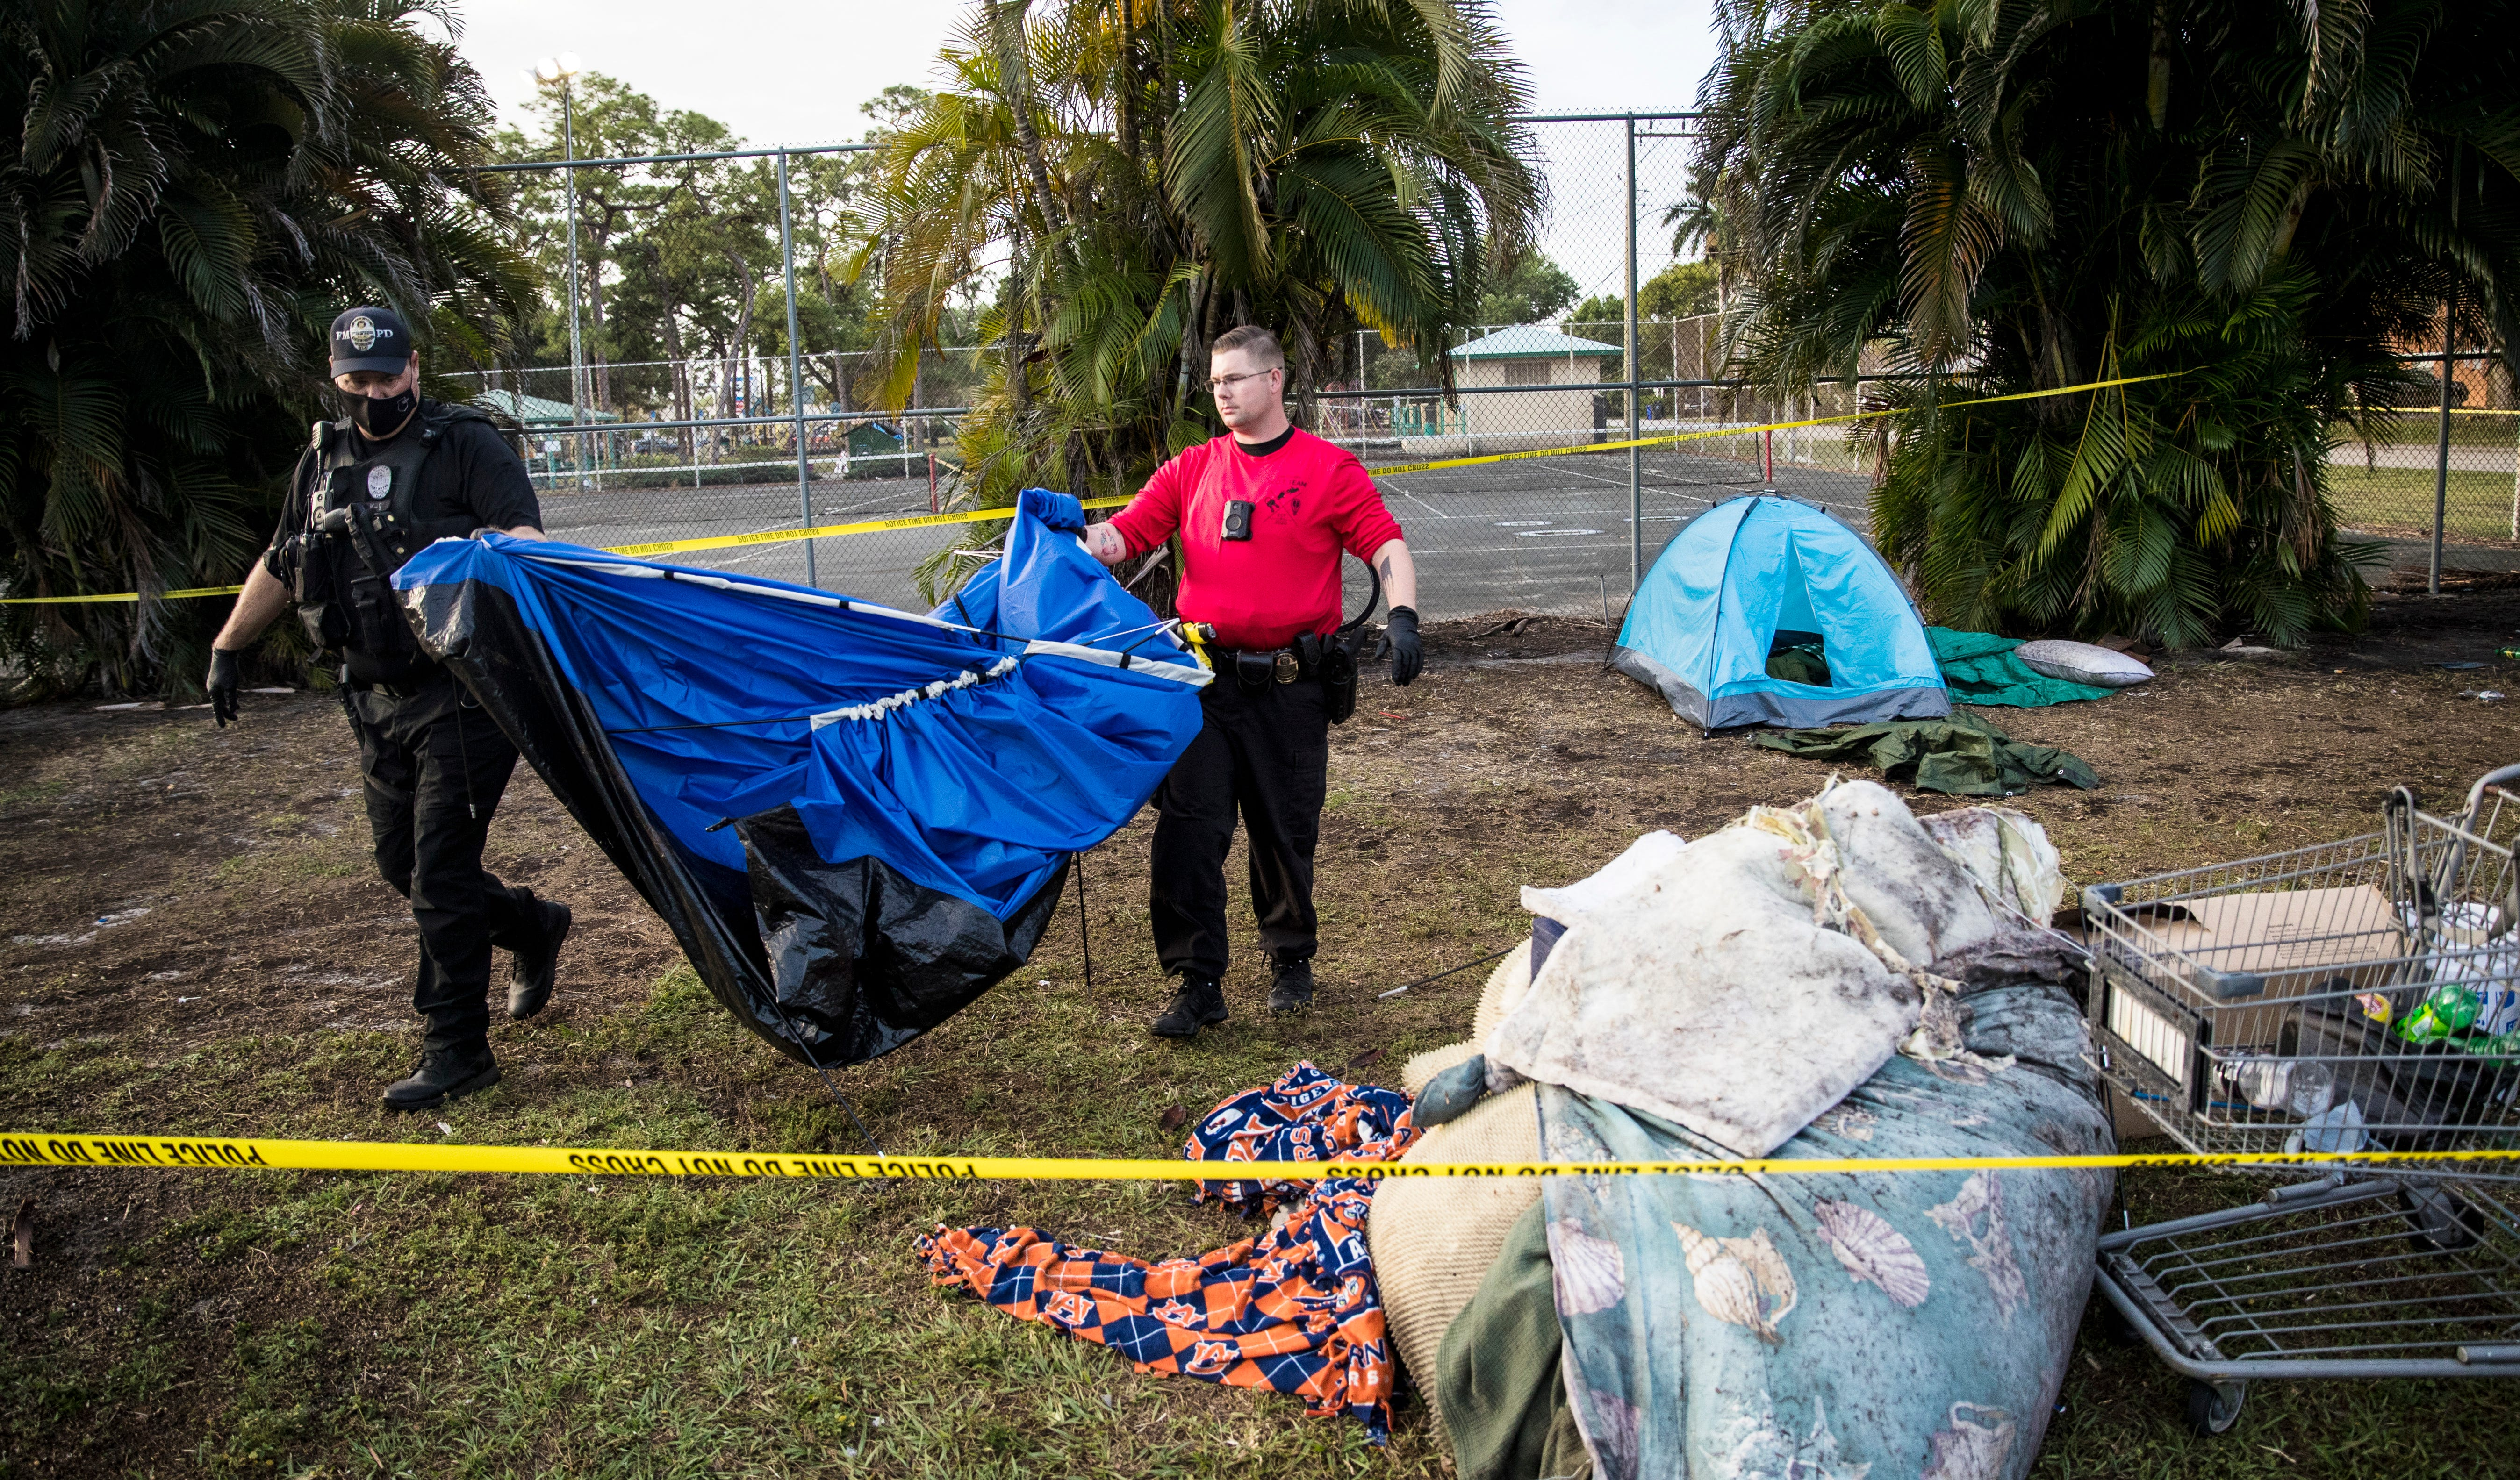 Fort Myers park cleared of overnight stays by homeless; 'We can't arrest our way out of this problem' 3